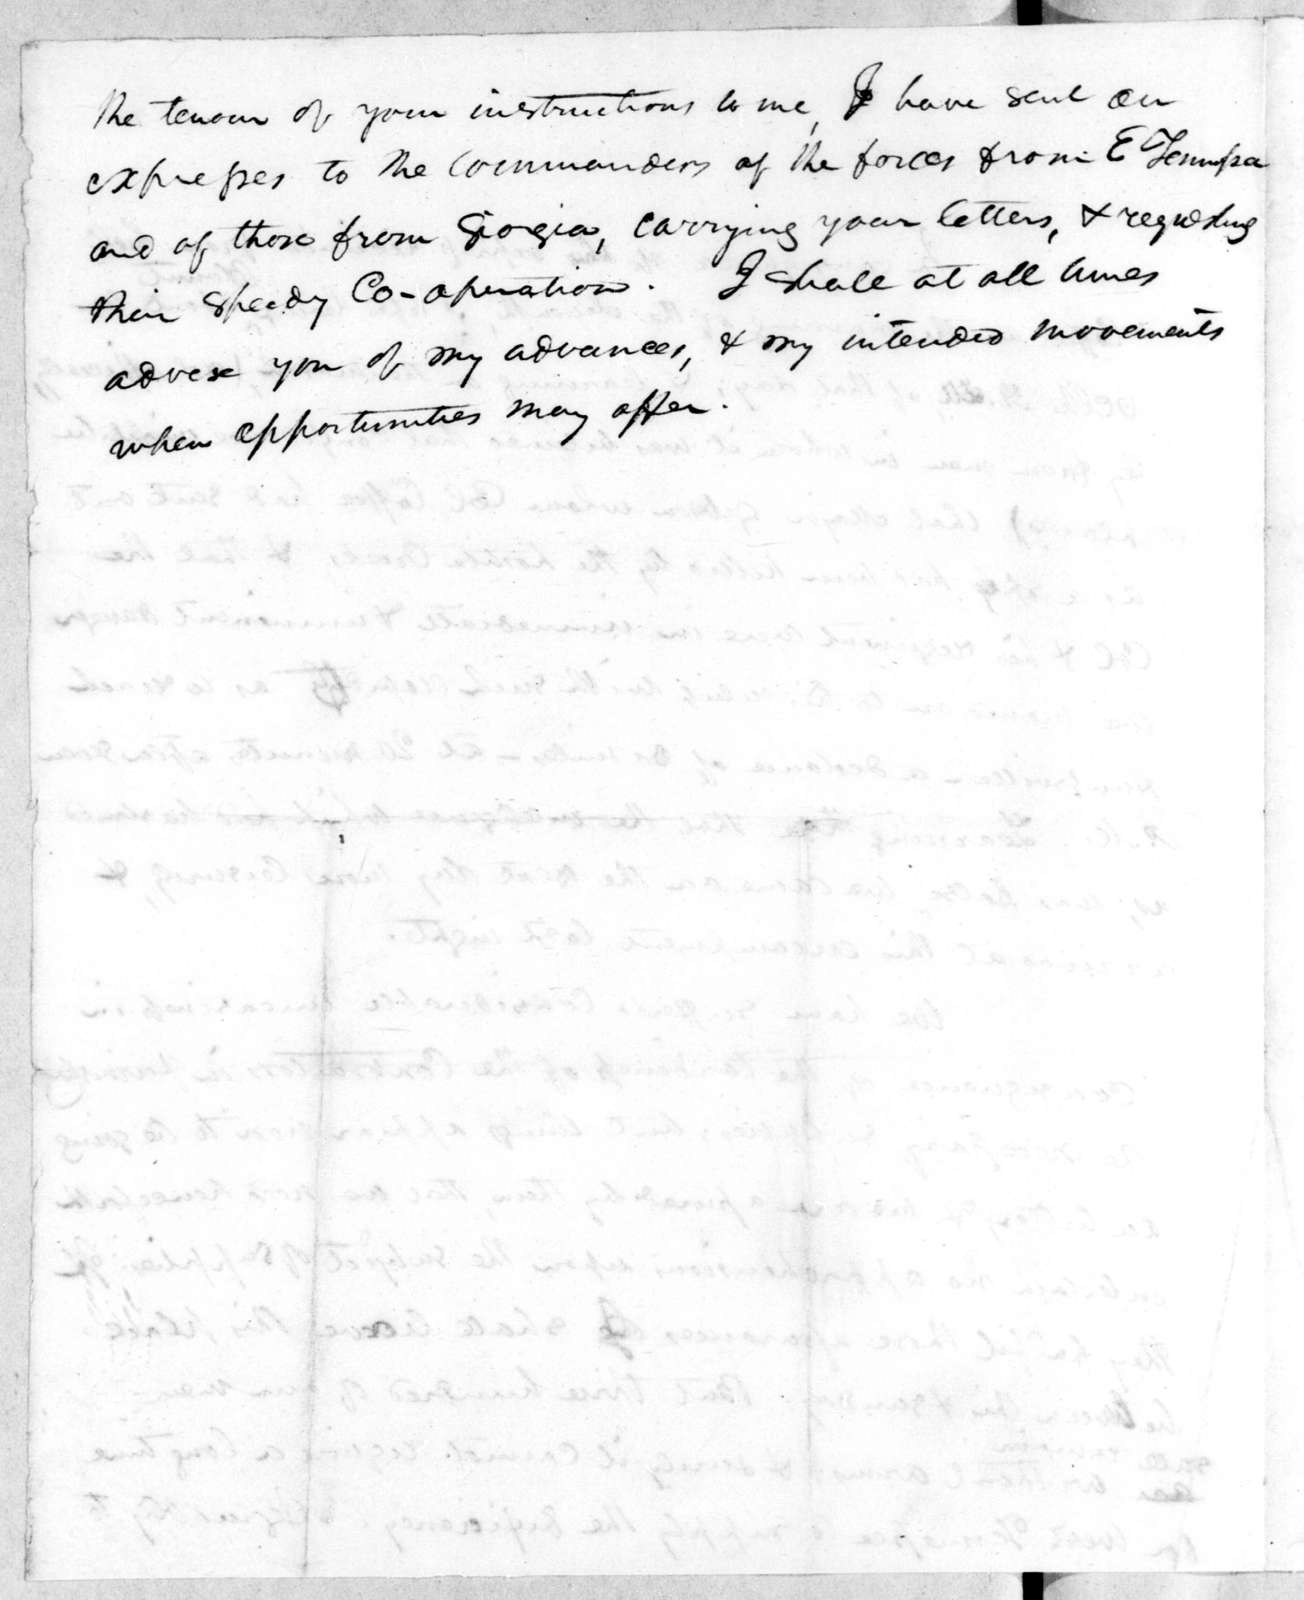 Unknown to Unknown, October 13, 1813